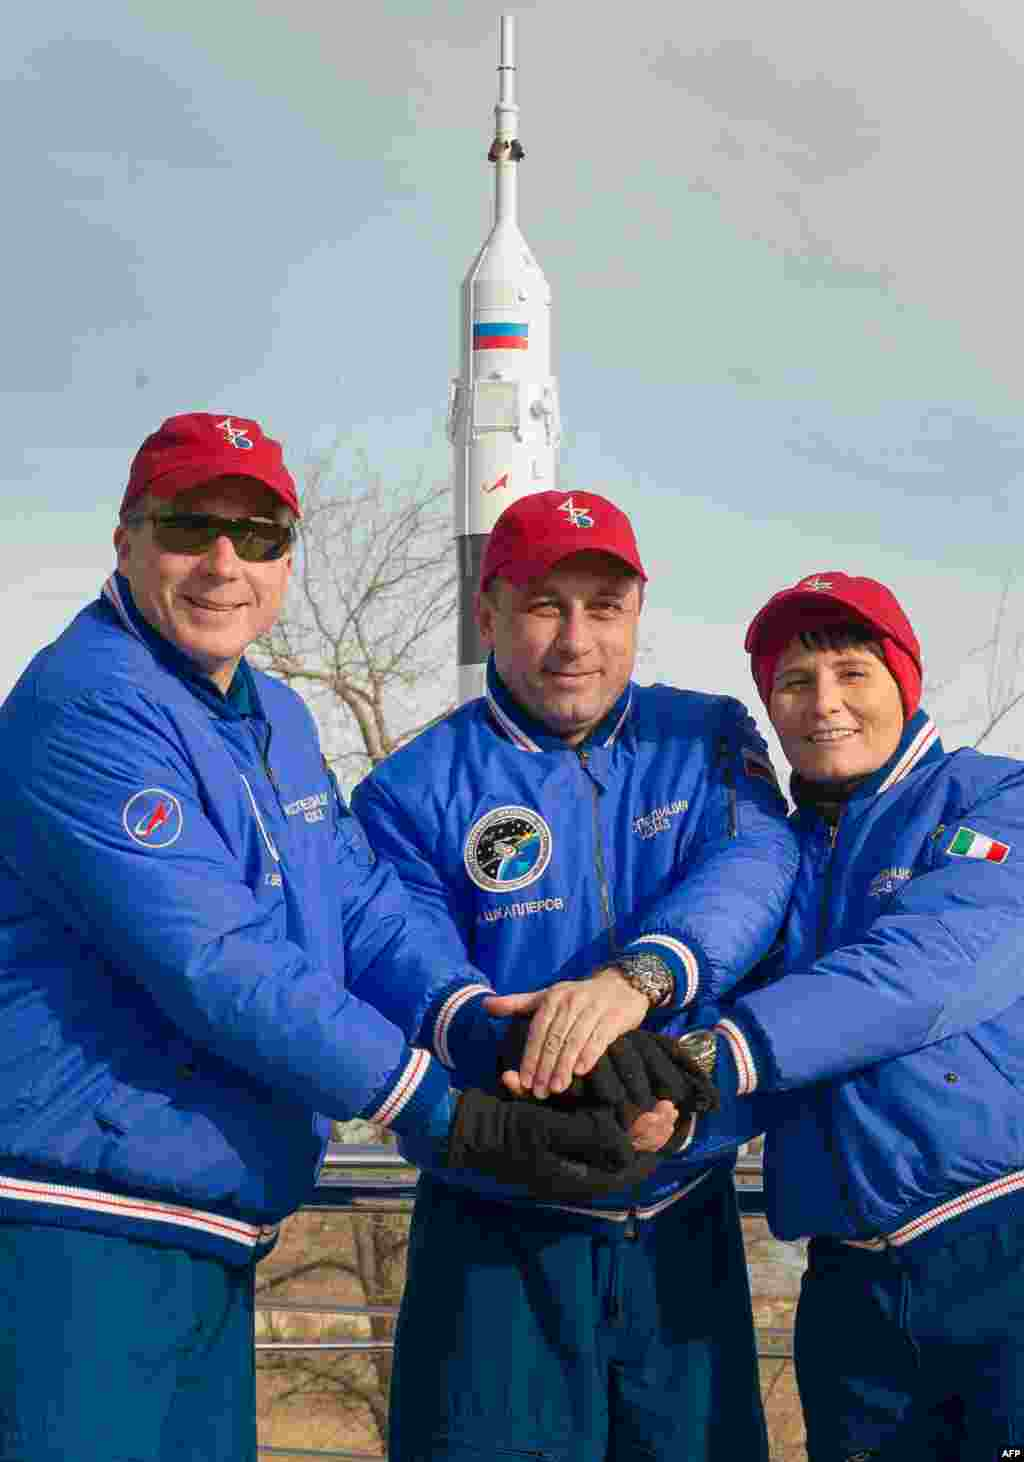 U.S. astronaut Terry Virts (left), Russian cosmonaut Anton Shkaplerov (center), and the European Space Agency's Italian astronaut Samantha Cristoforetti pose in front of the Soyuz TMA-15M space vehicle at its launch pad in Kazakhstan. The three are due to blast off for the International Space Station on November 23. (AFP)